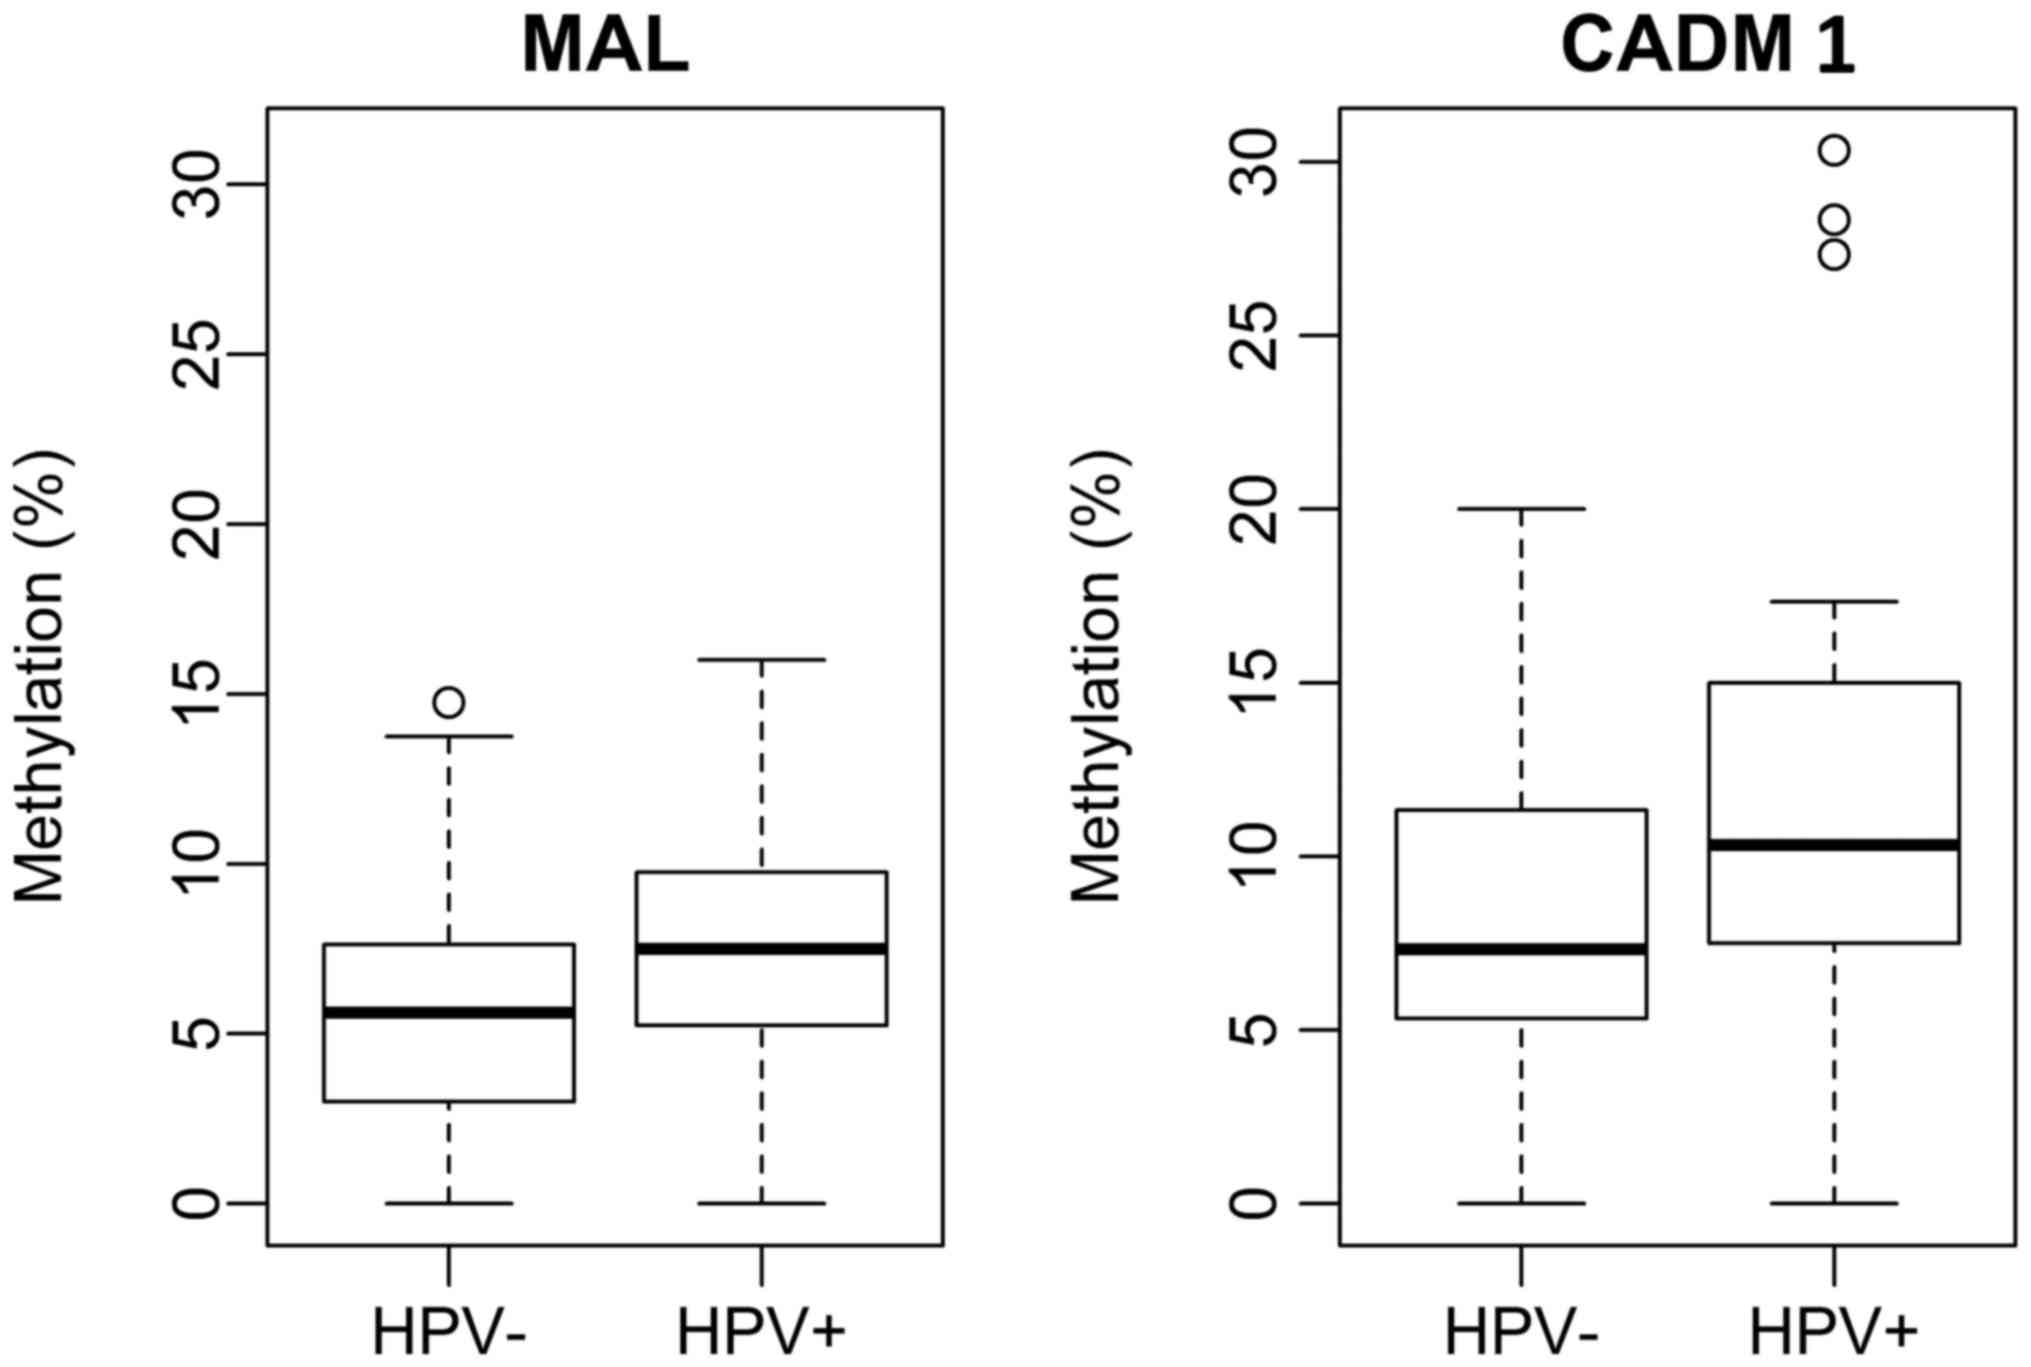 Methylation of CADM1 and MAL together with HPV status in cytological